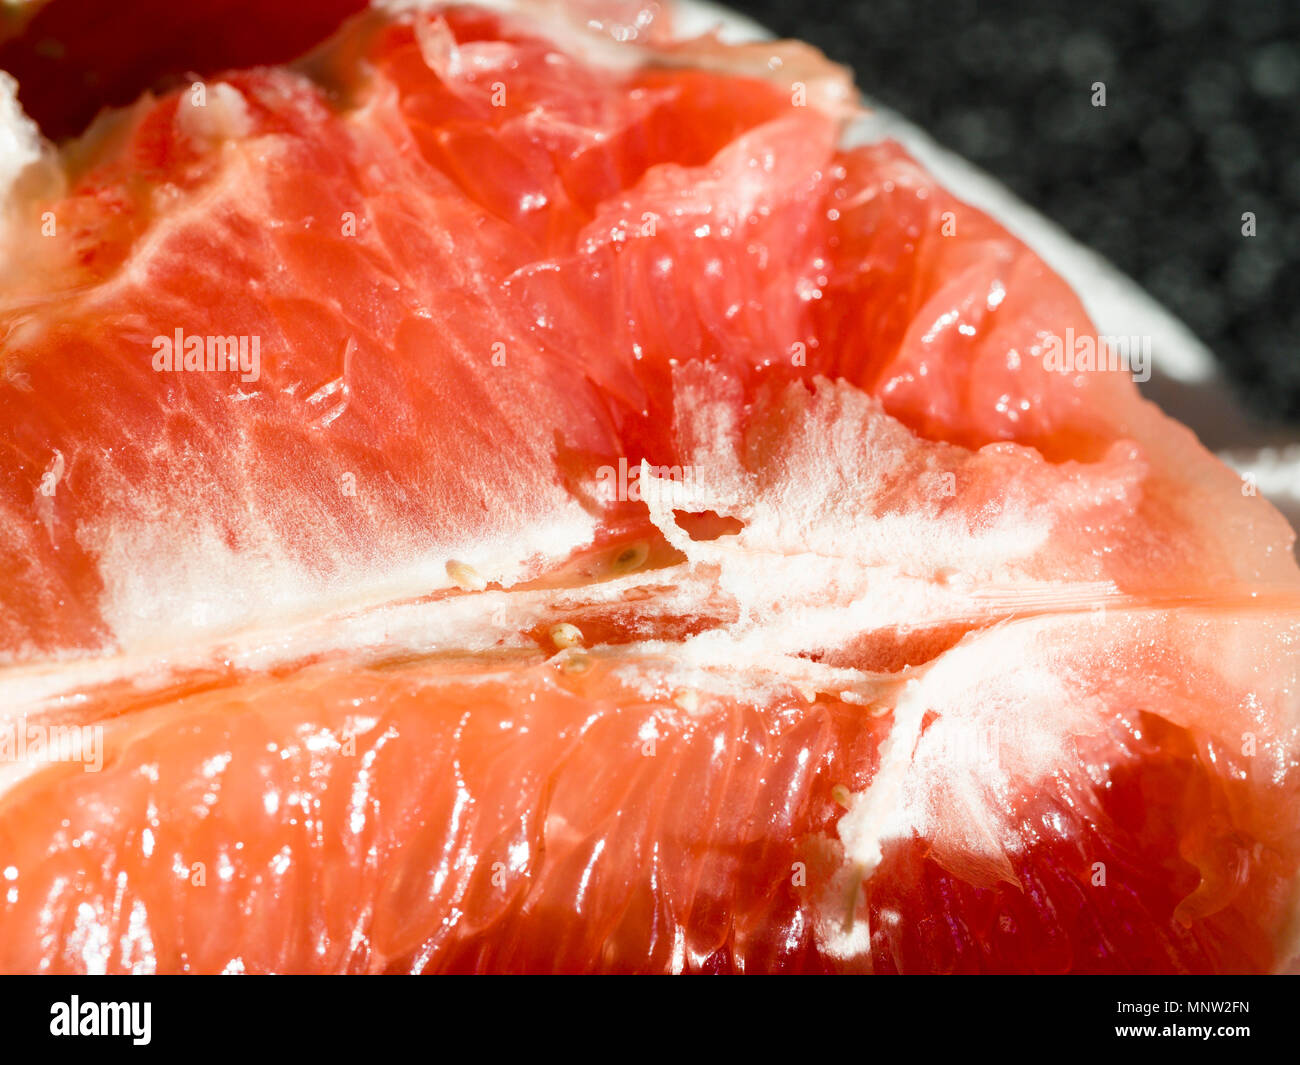 Closeup of Ruby Red Grapefruit segments: A deep red grapefruit opened and ready to eat shines in the early morning sun. - Stock Image